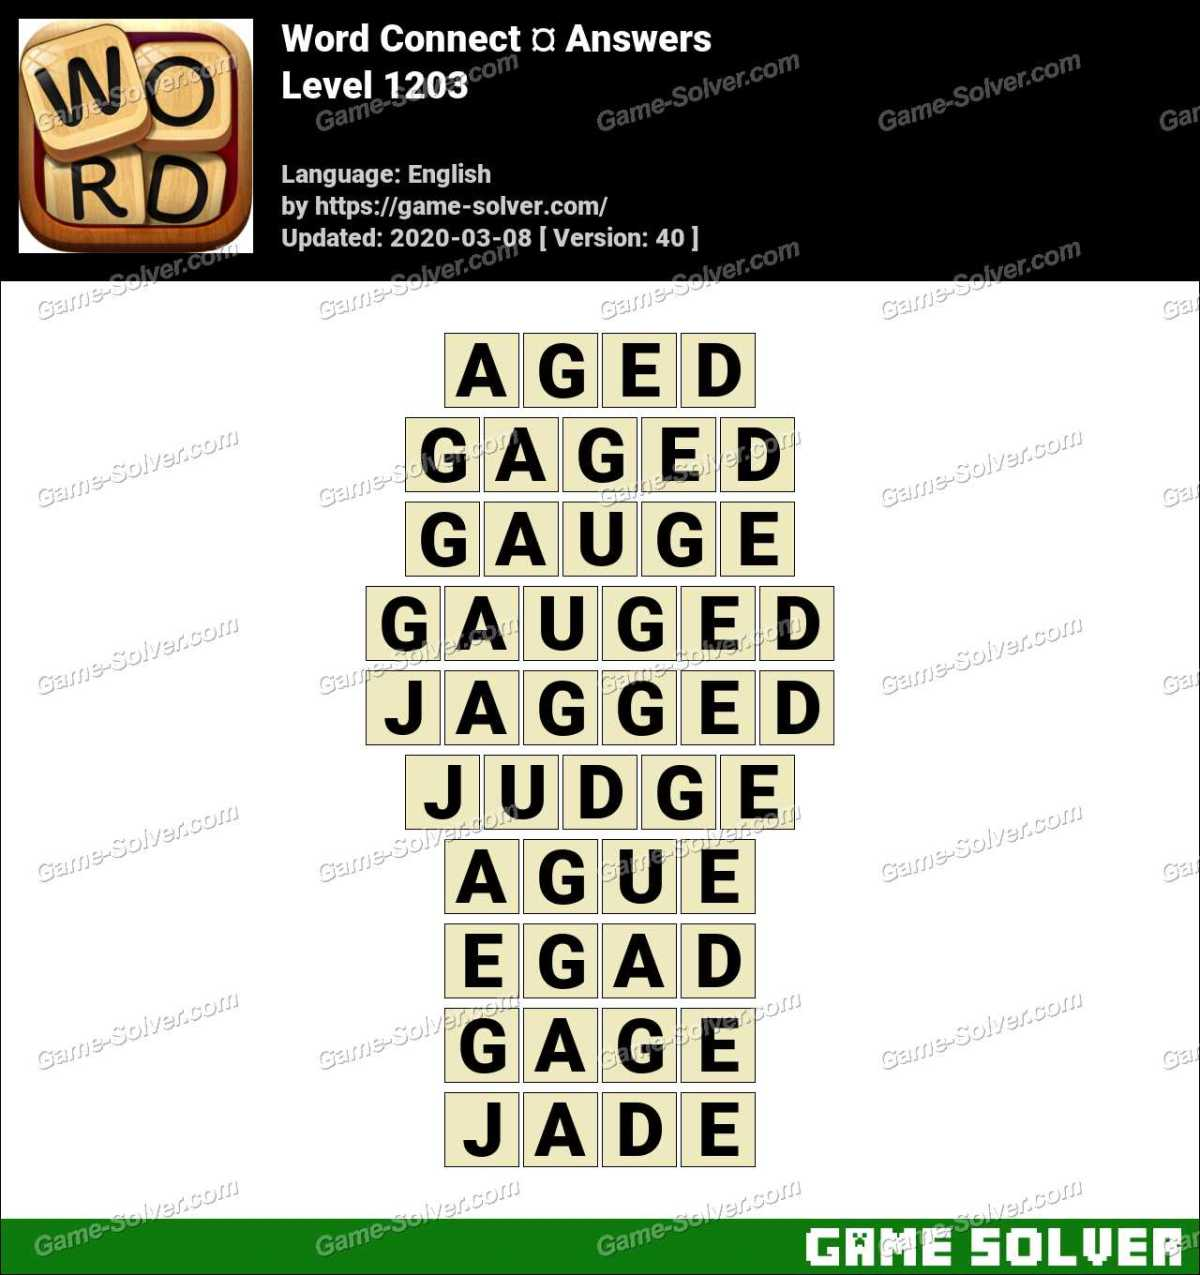 Word Connect Level 1203 Answers